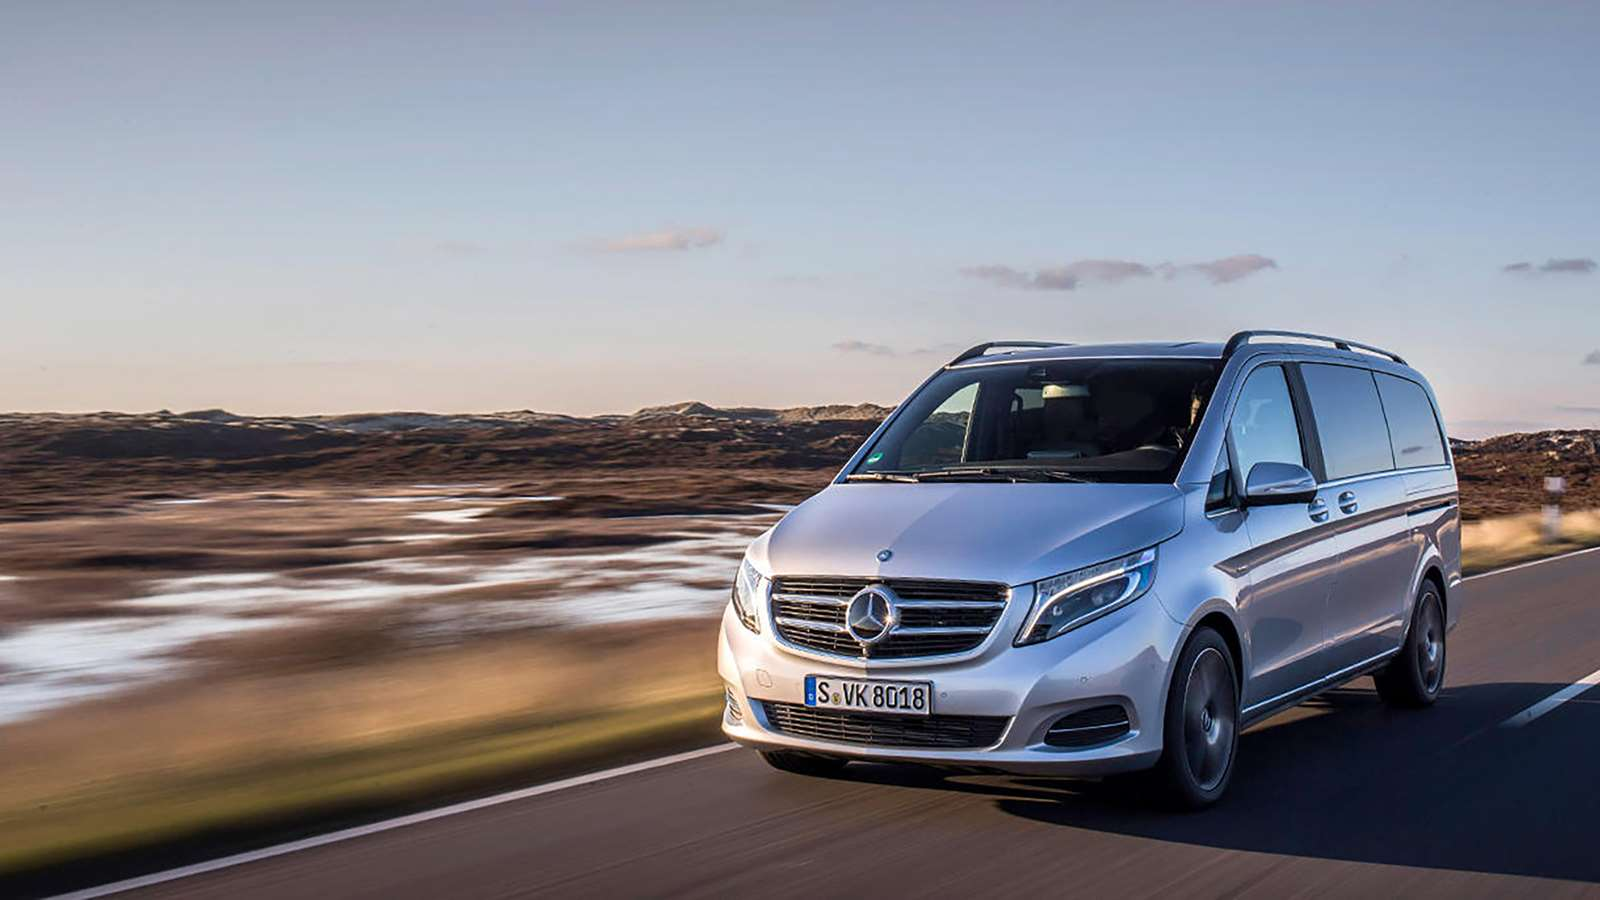 Top 10 Large Family Cars: The 10 Best Cars For Extra-large Families